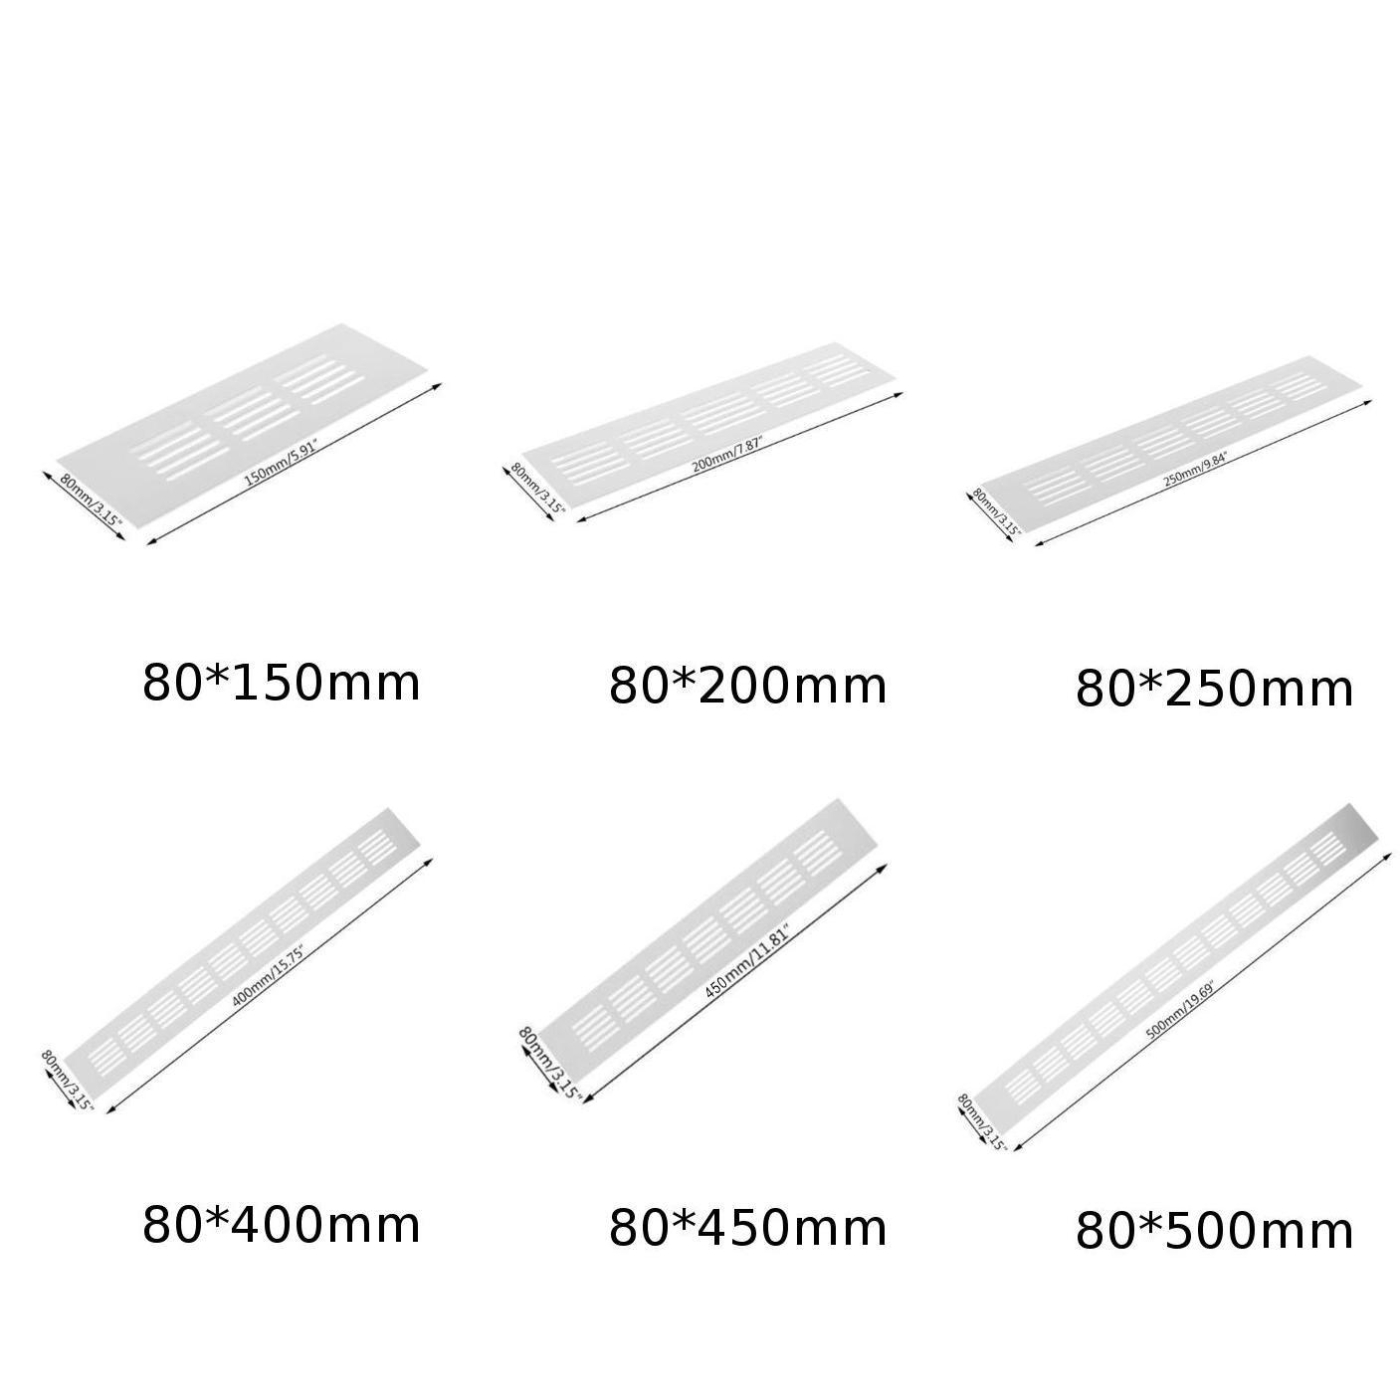 Alloy Rectangular Air Vent Grille Ventilation Cover For Cabinets Wardrobes